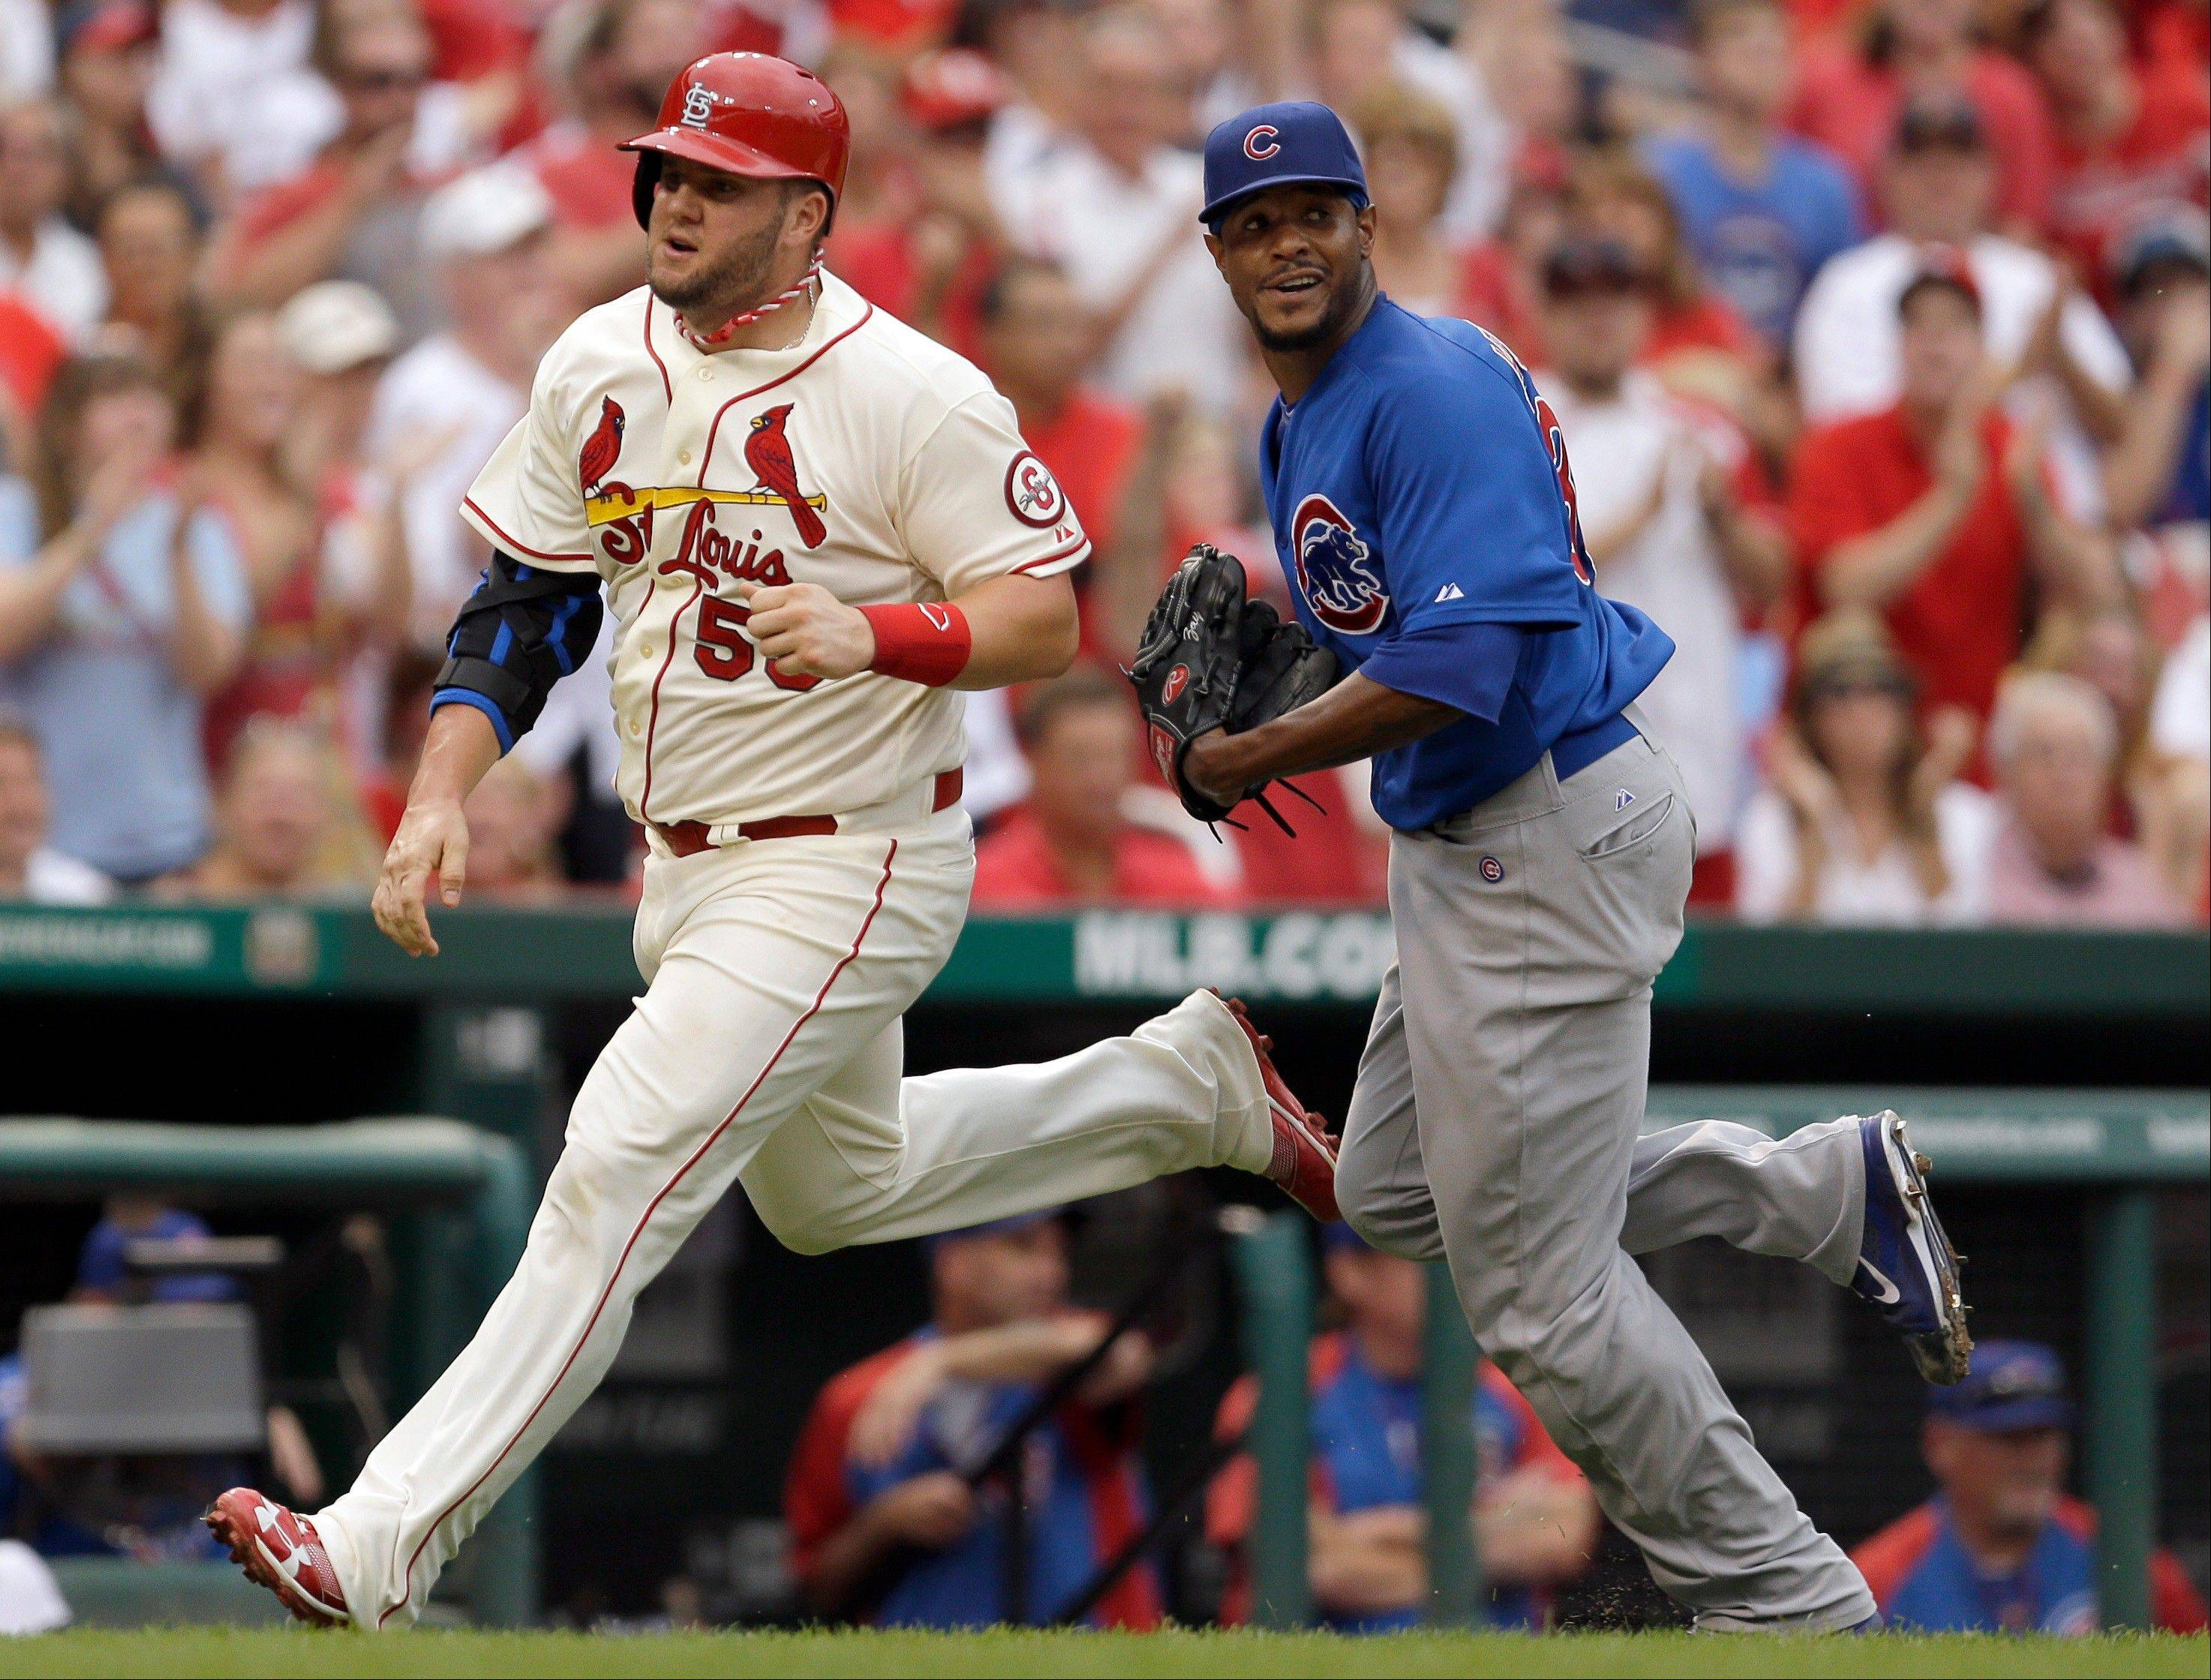 St. Louis Cardinals' Matt Adams, left, heads in to score on a two-run double by Yadier Molina as Chicago Cubs starting pitcher Edwin Jackson, right, runs to back up the throw during the third inning of a baseball game Saturday in St. Louis.